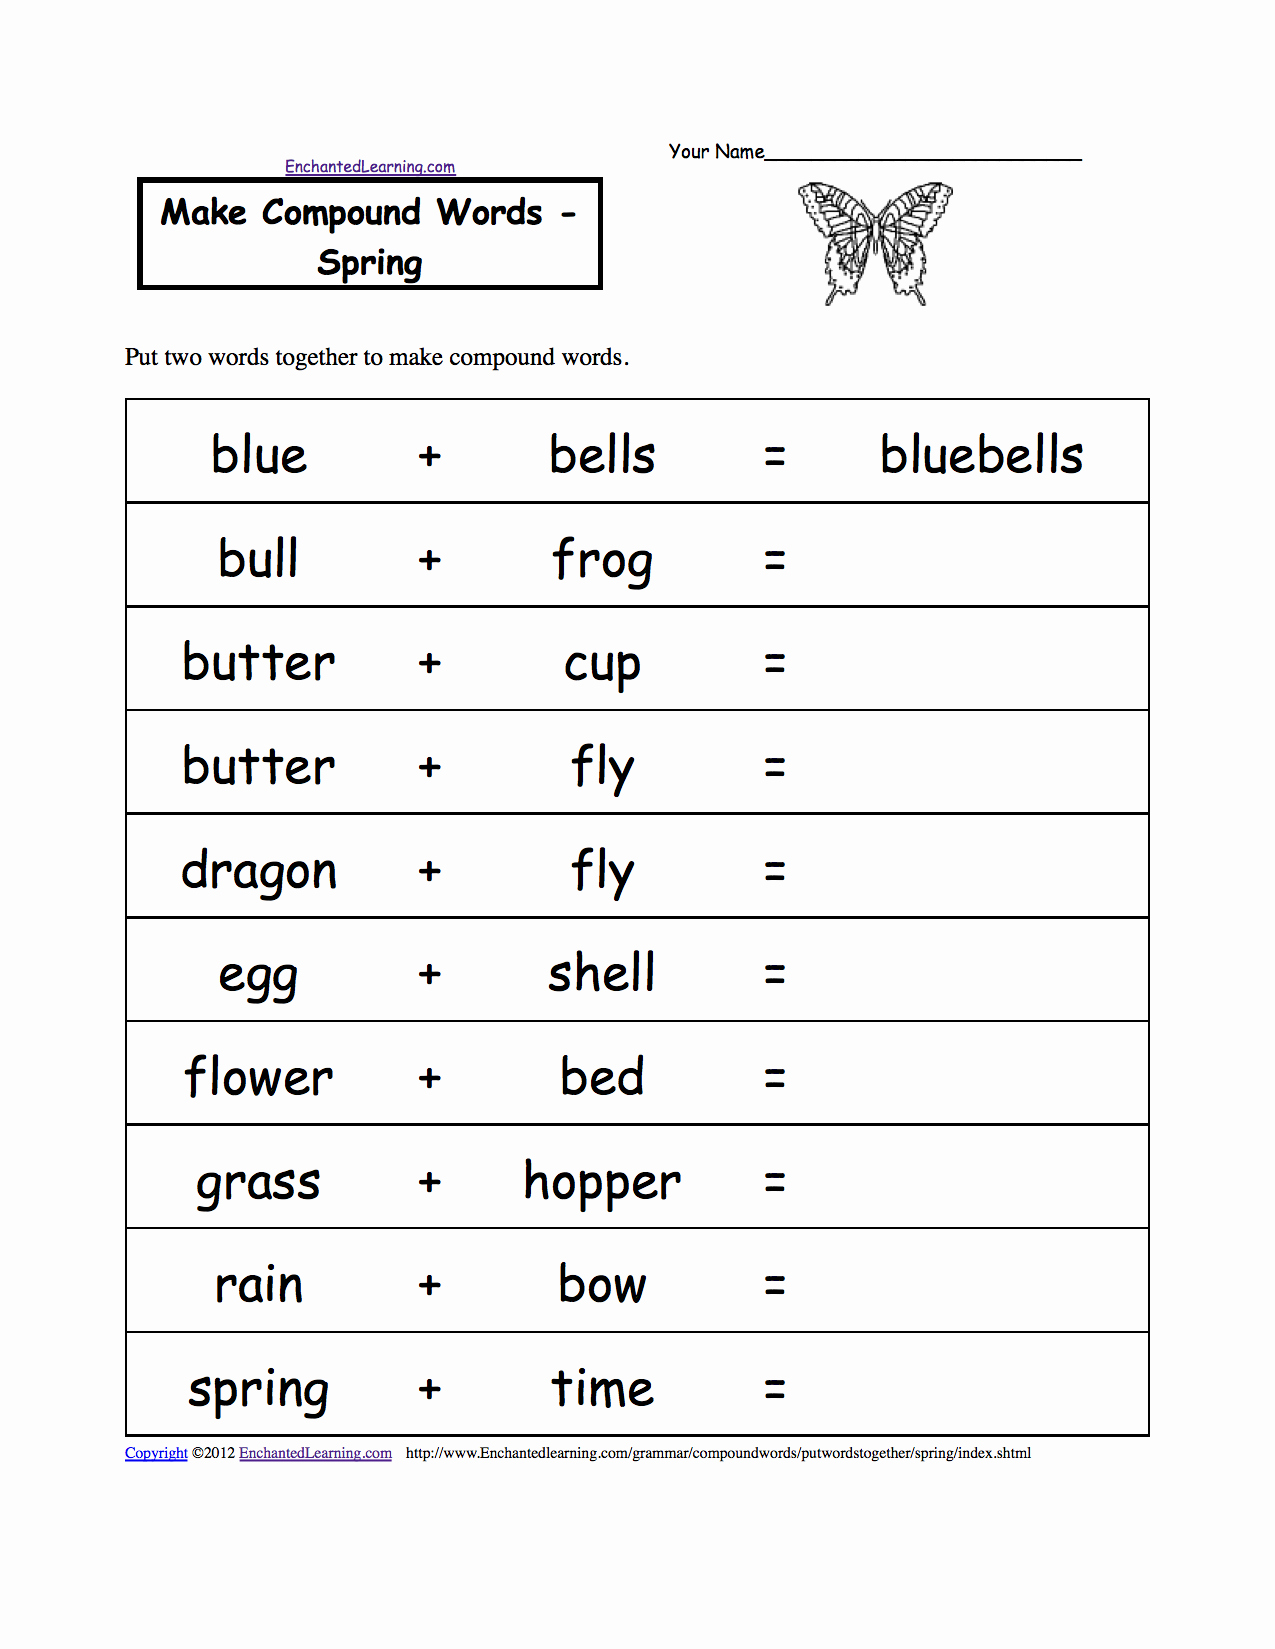 Free Printable Compound Word Worksheets Best Of Make Pound Words Printable Worksheets